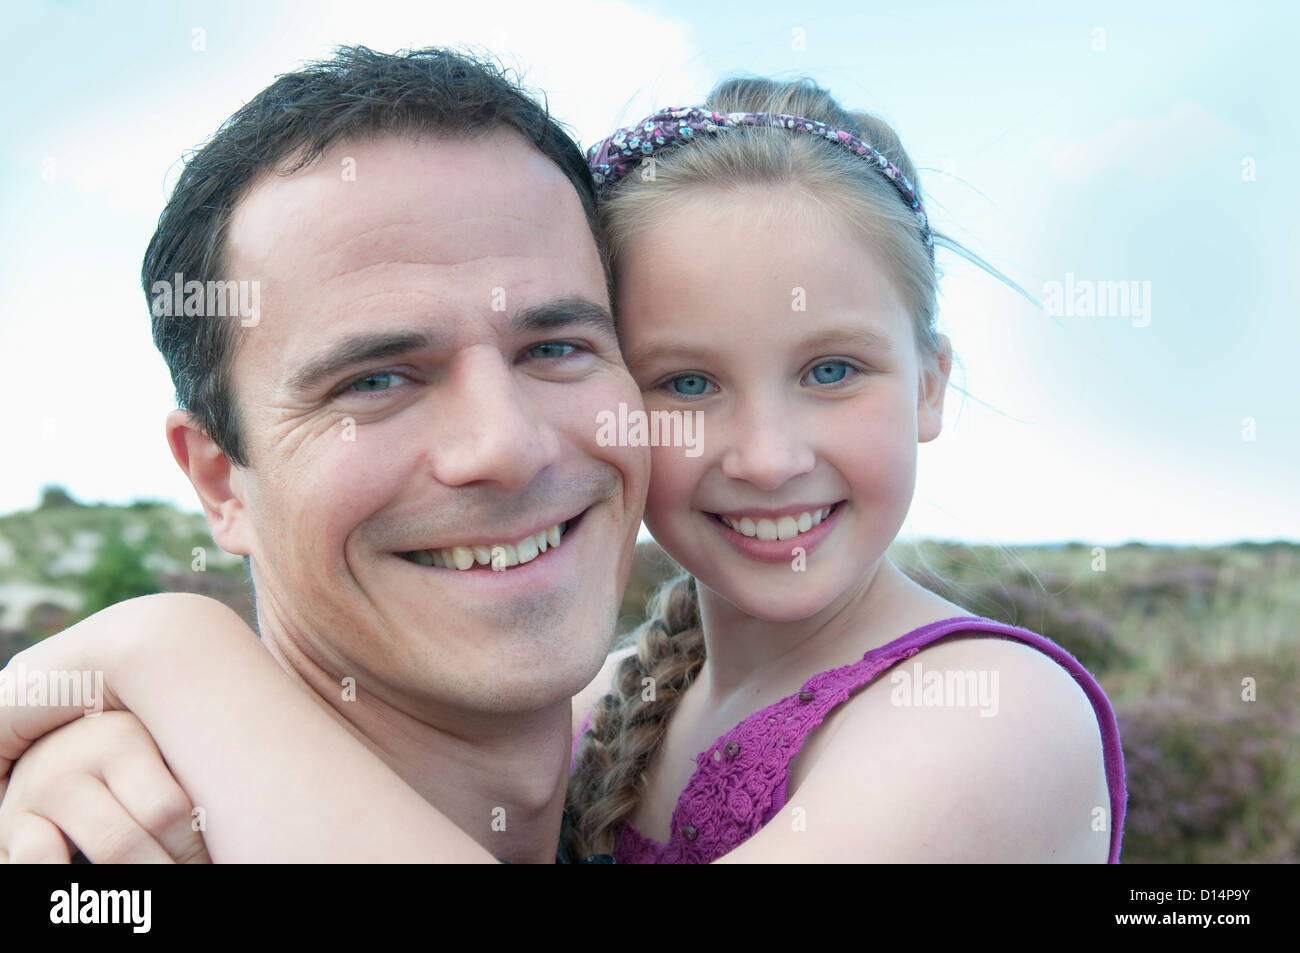 Père et fille smiling together Photo Stock